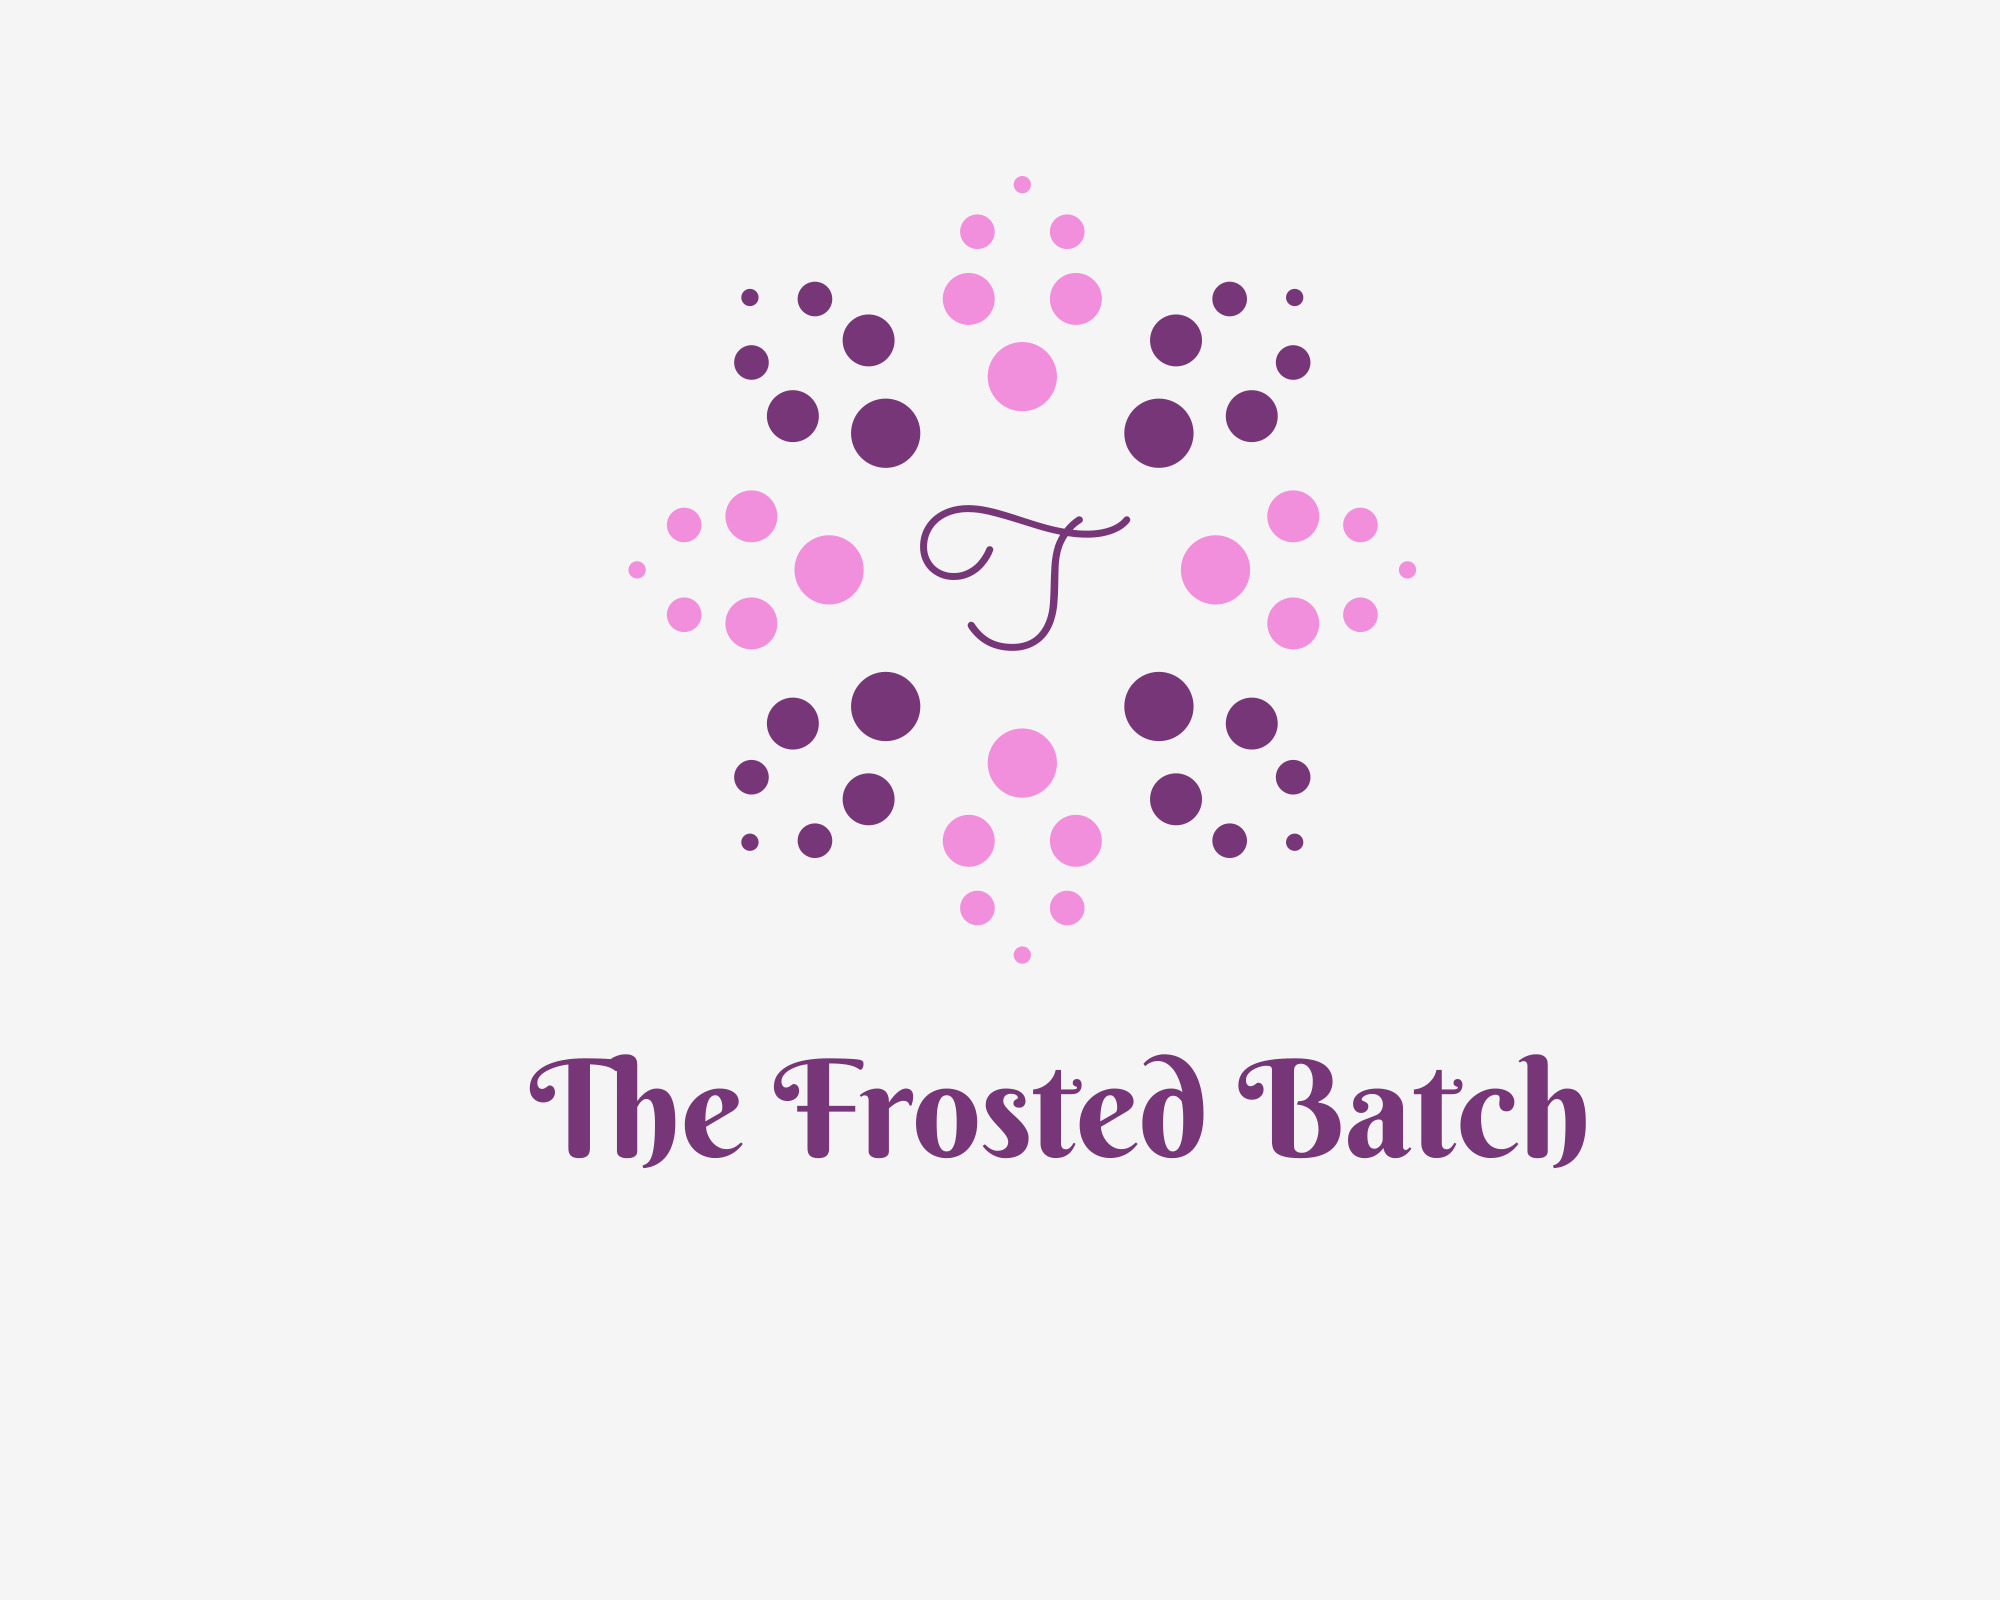 The Frosted Batch